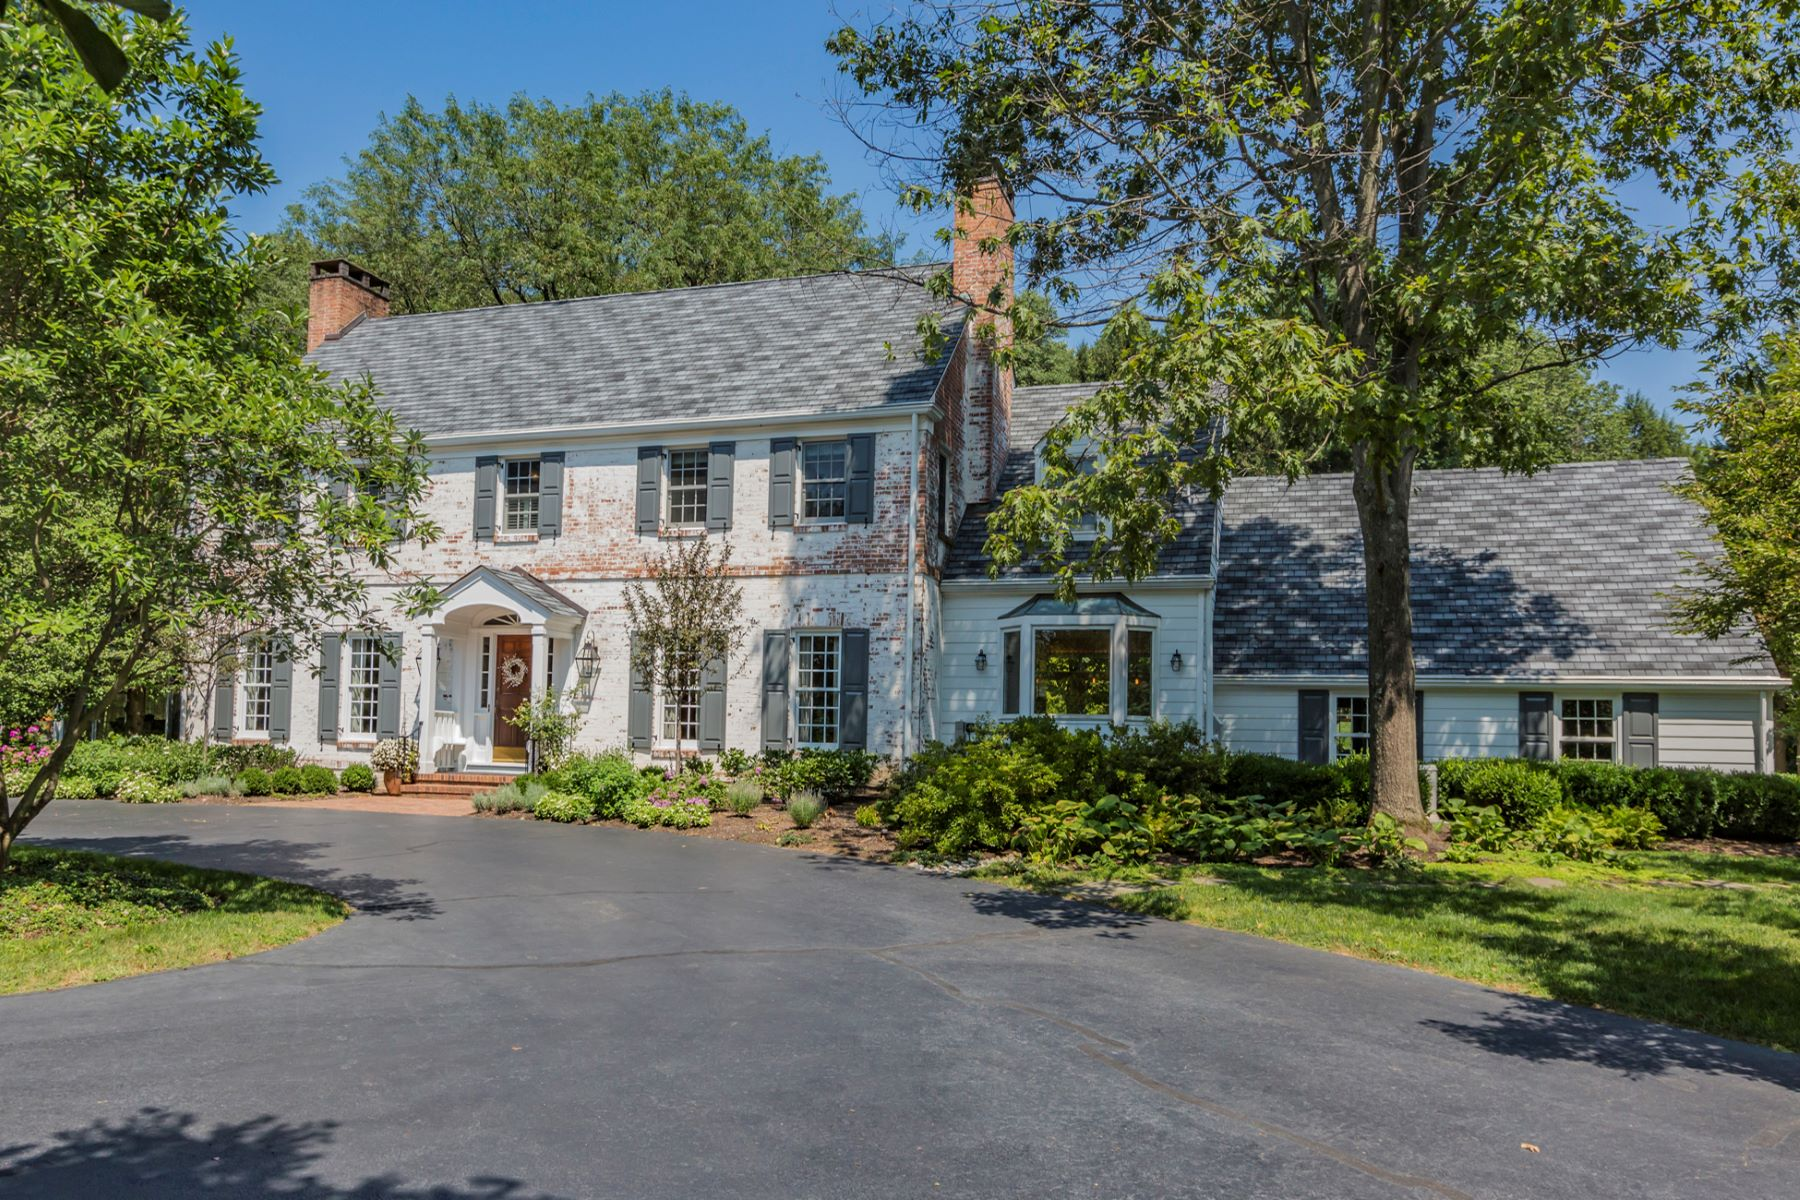 Property for Sale at Refined Colonial Framed by Magnificent Grounds 121 Winfield Road, Princeton, New Jersey 08540 United States